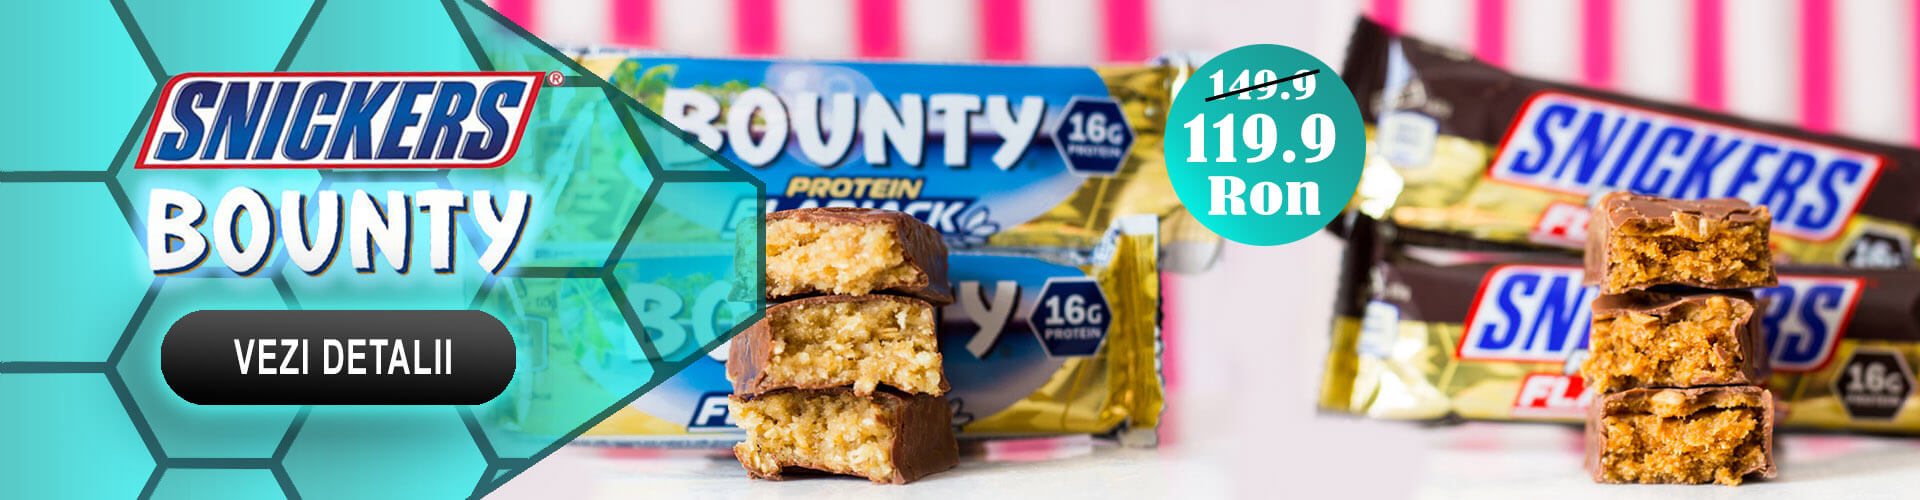 Snickers/Bounty Protein Flapjack